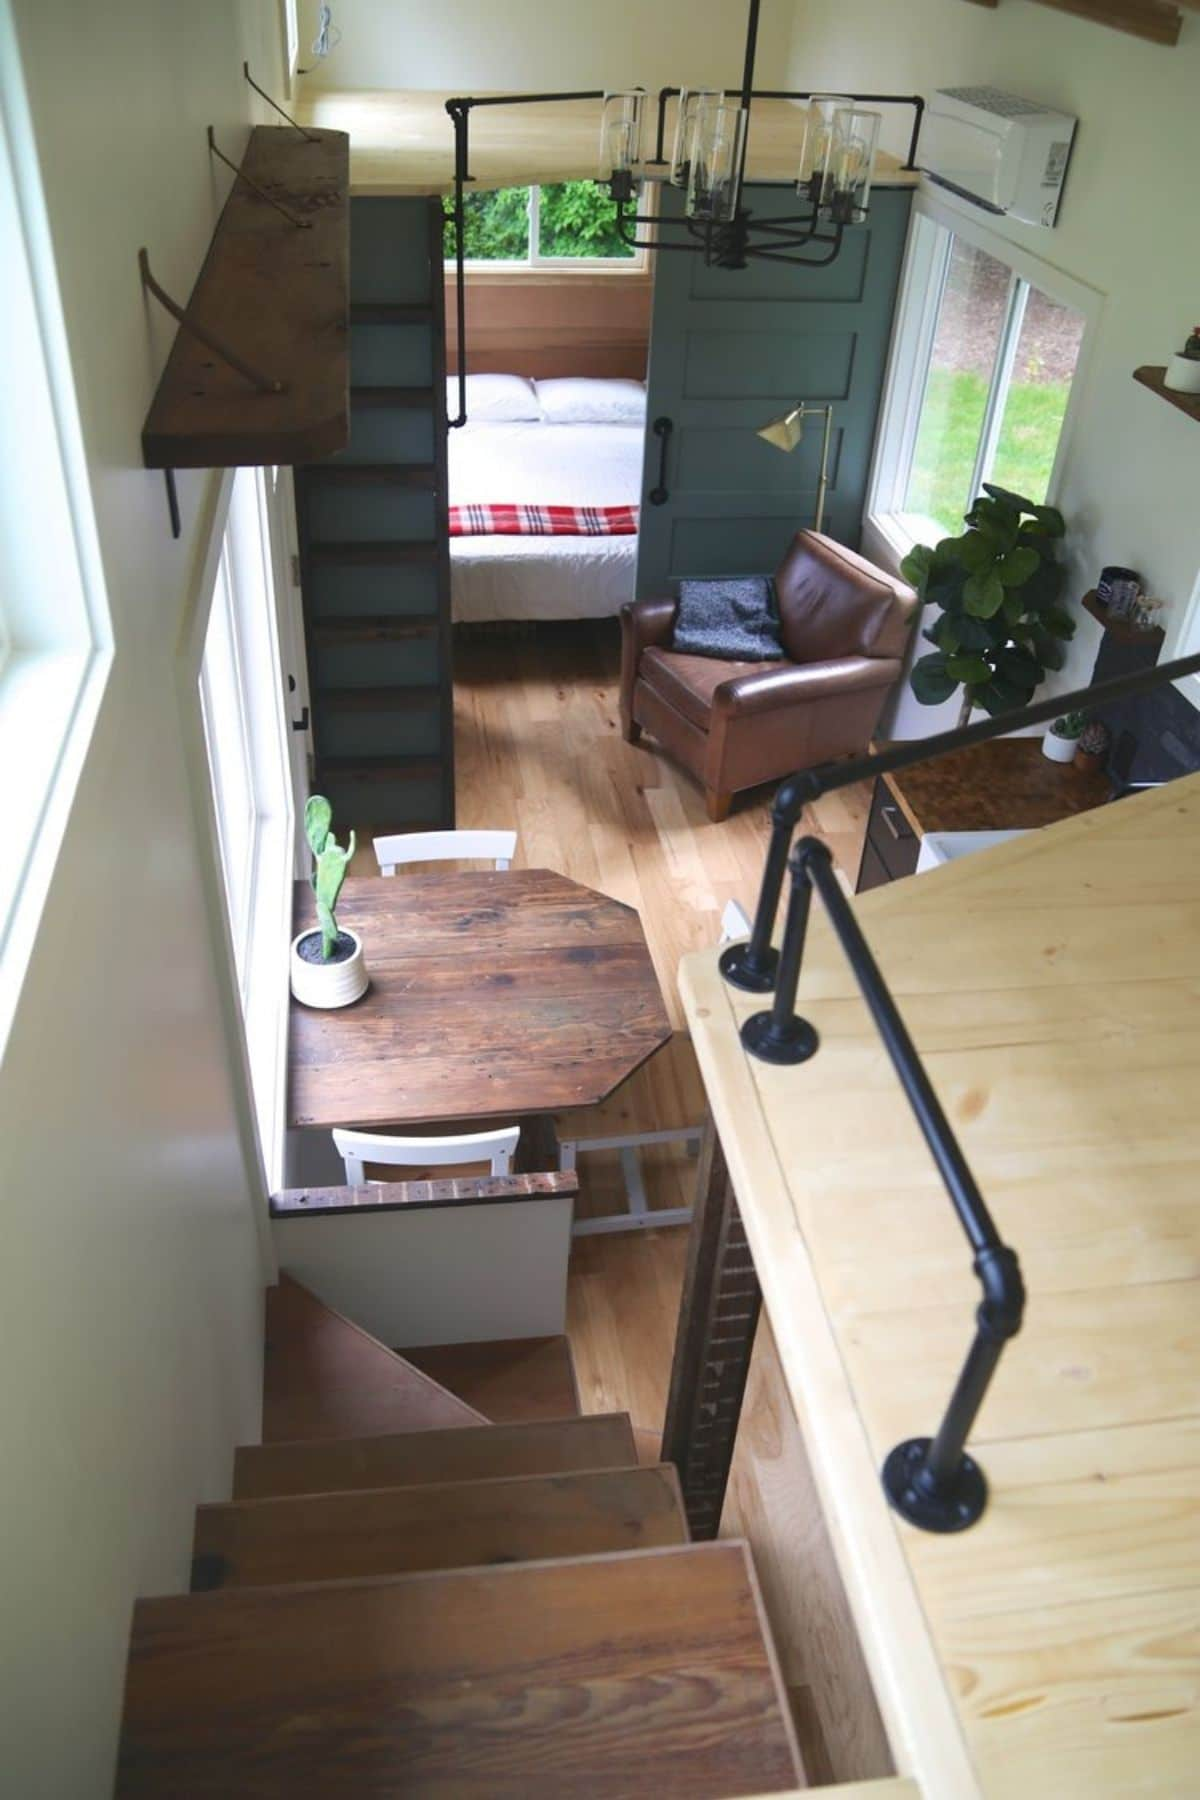 view down into tiny home from loft showing dining nook on left